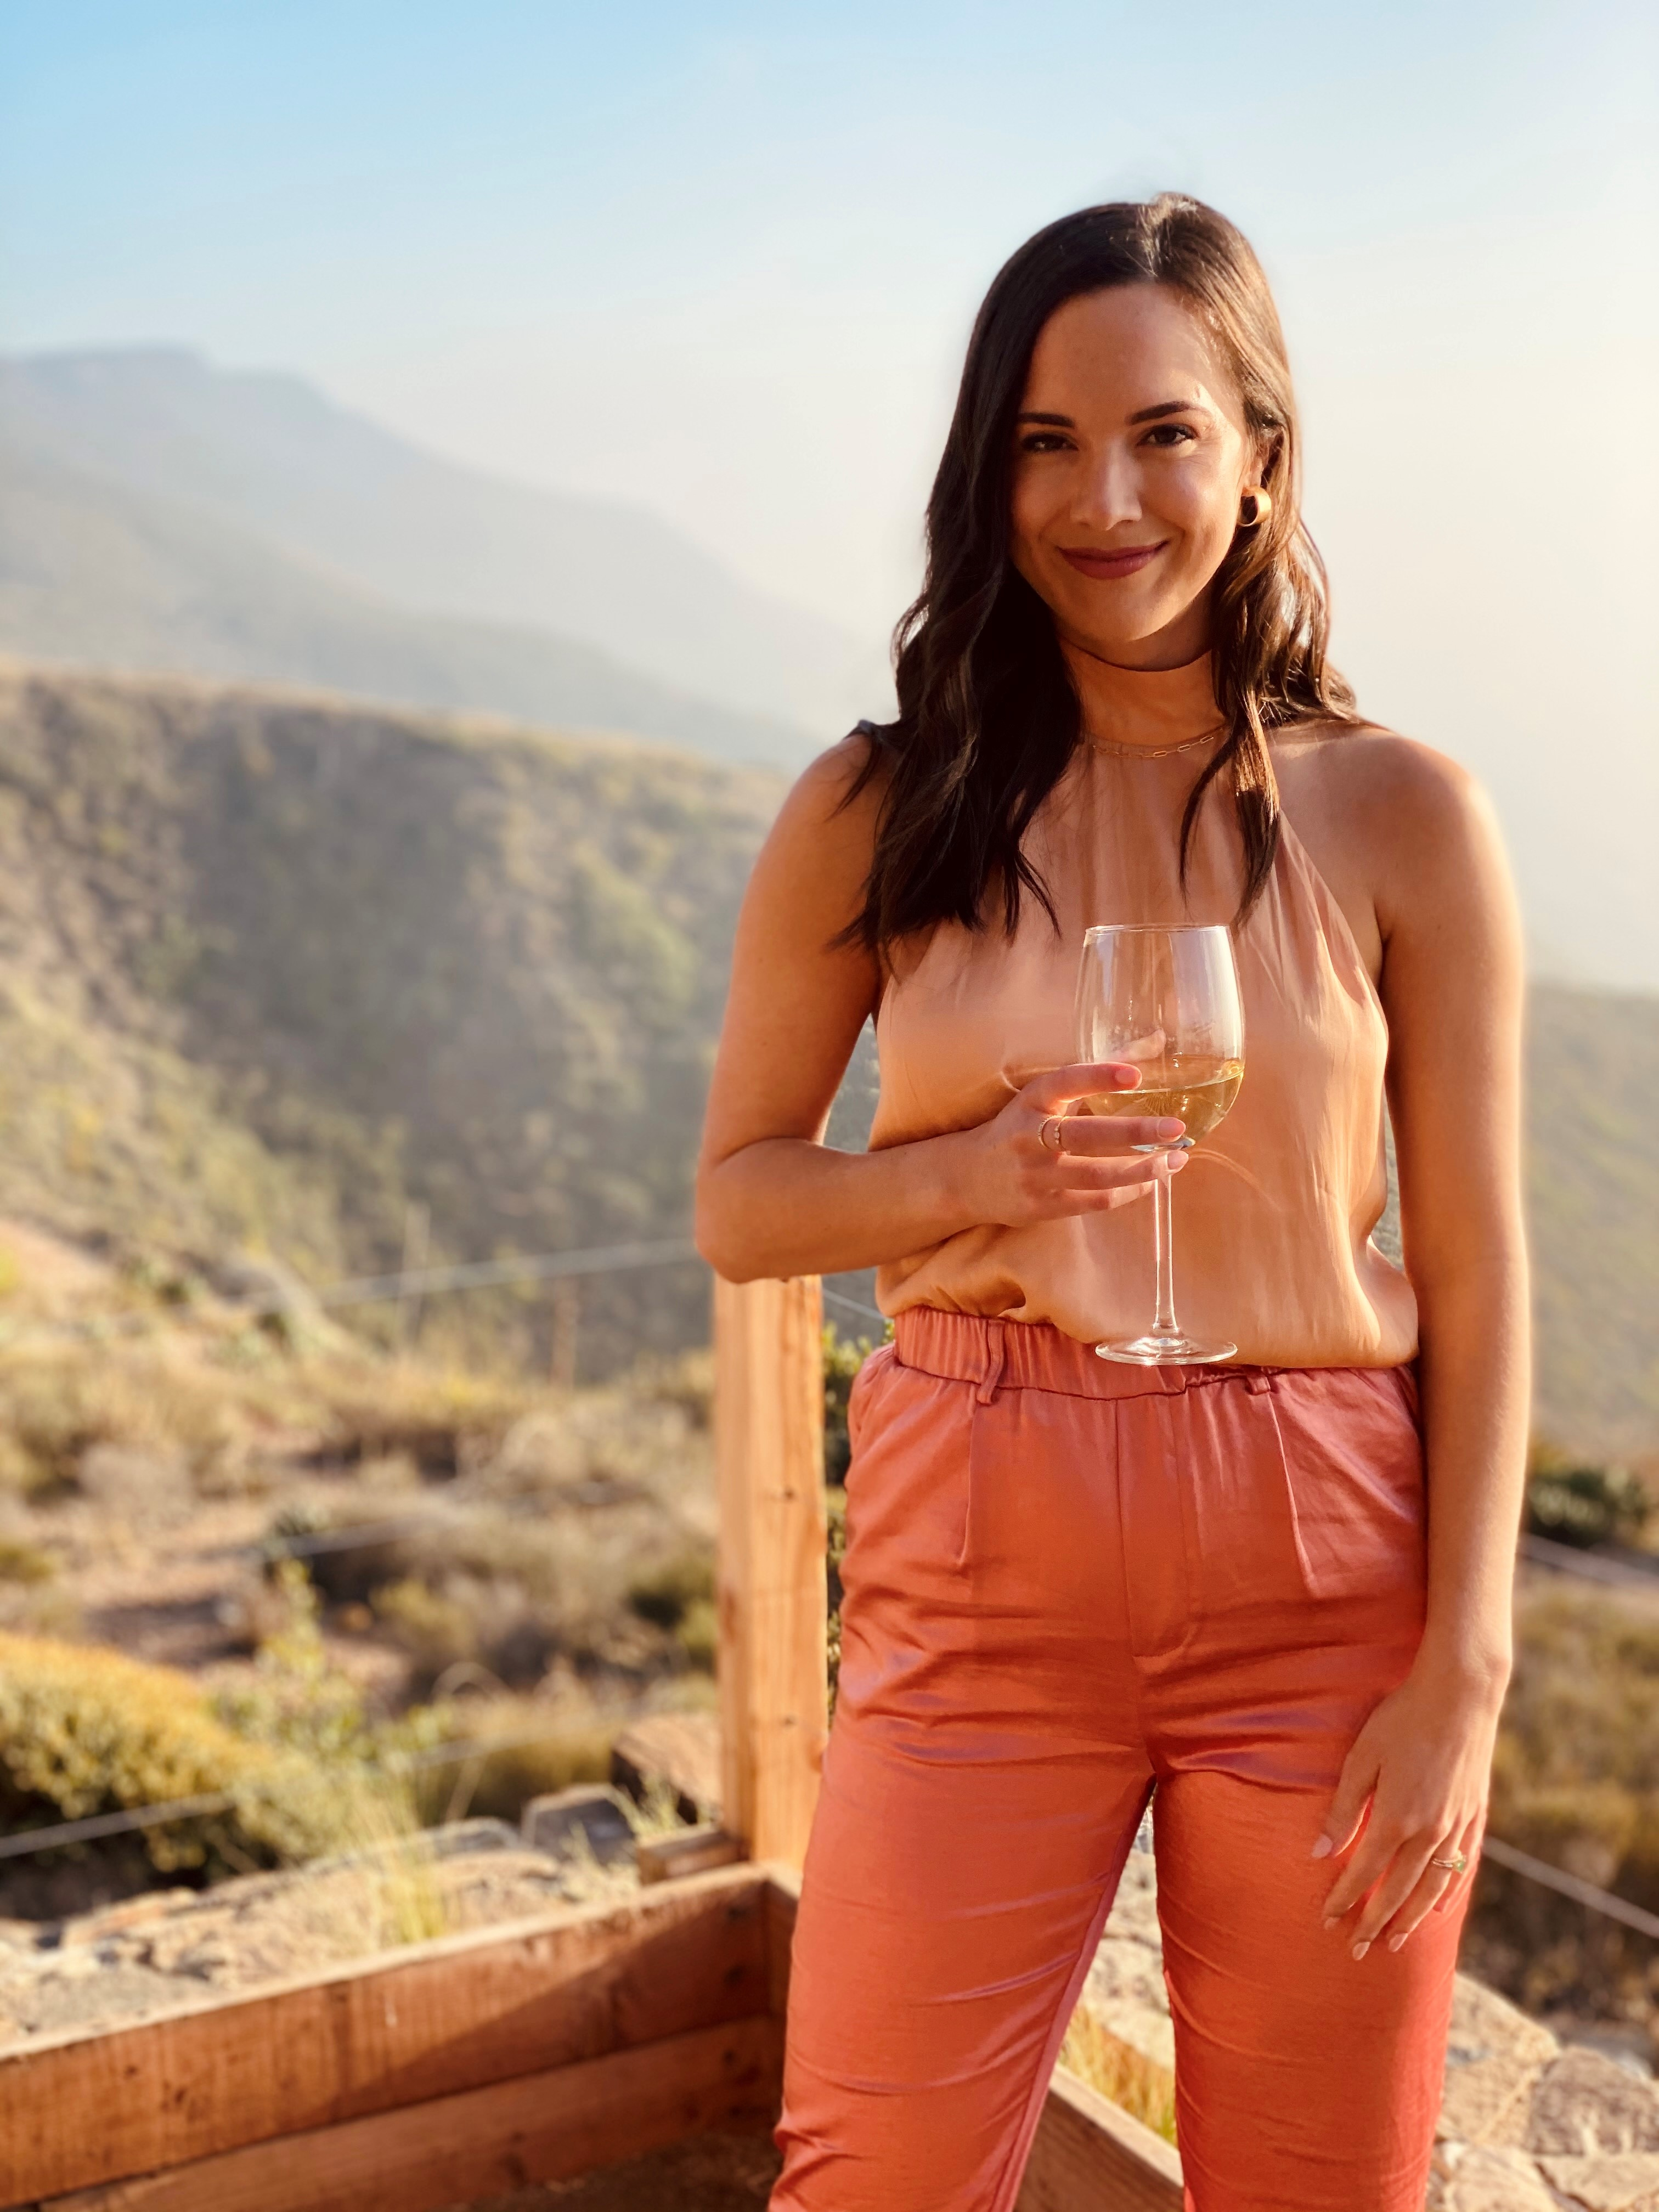 Wineries Valle de Guadalupe Wine Tasting Outfits